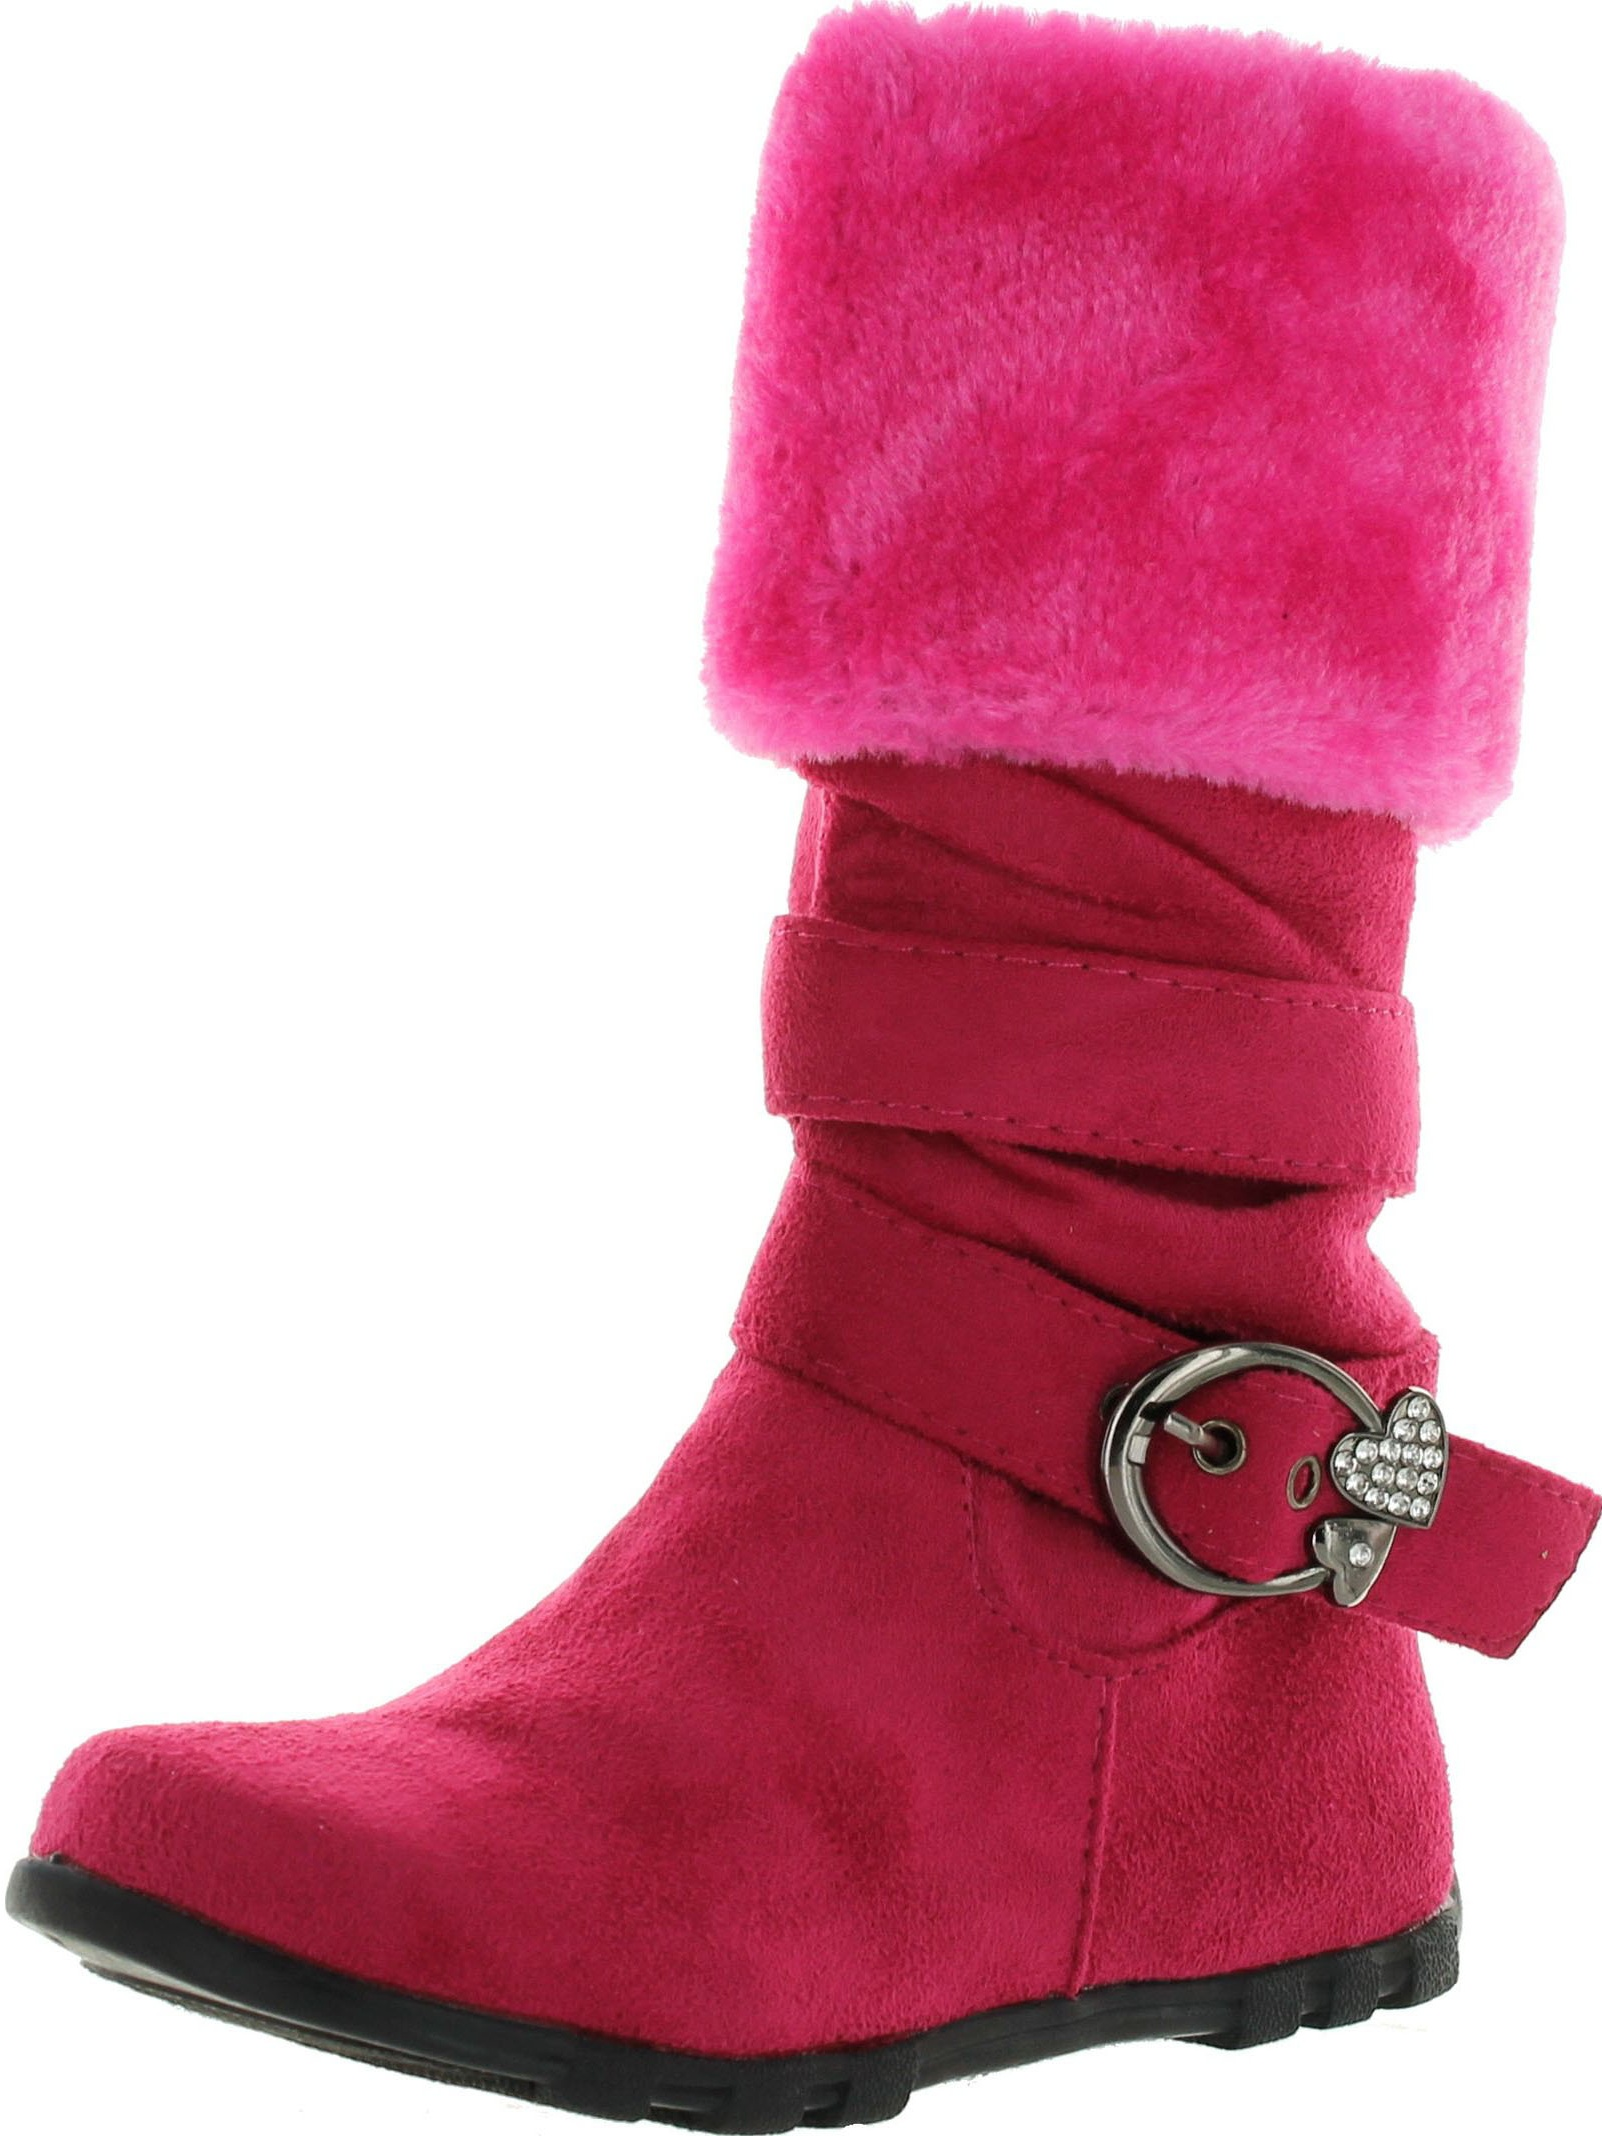 Diamond New Girls Slouch Comf Tall Midcalf Suede Winter Boots Shoes